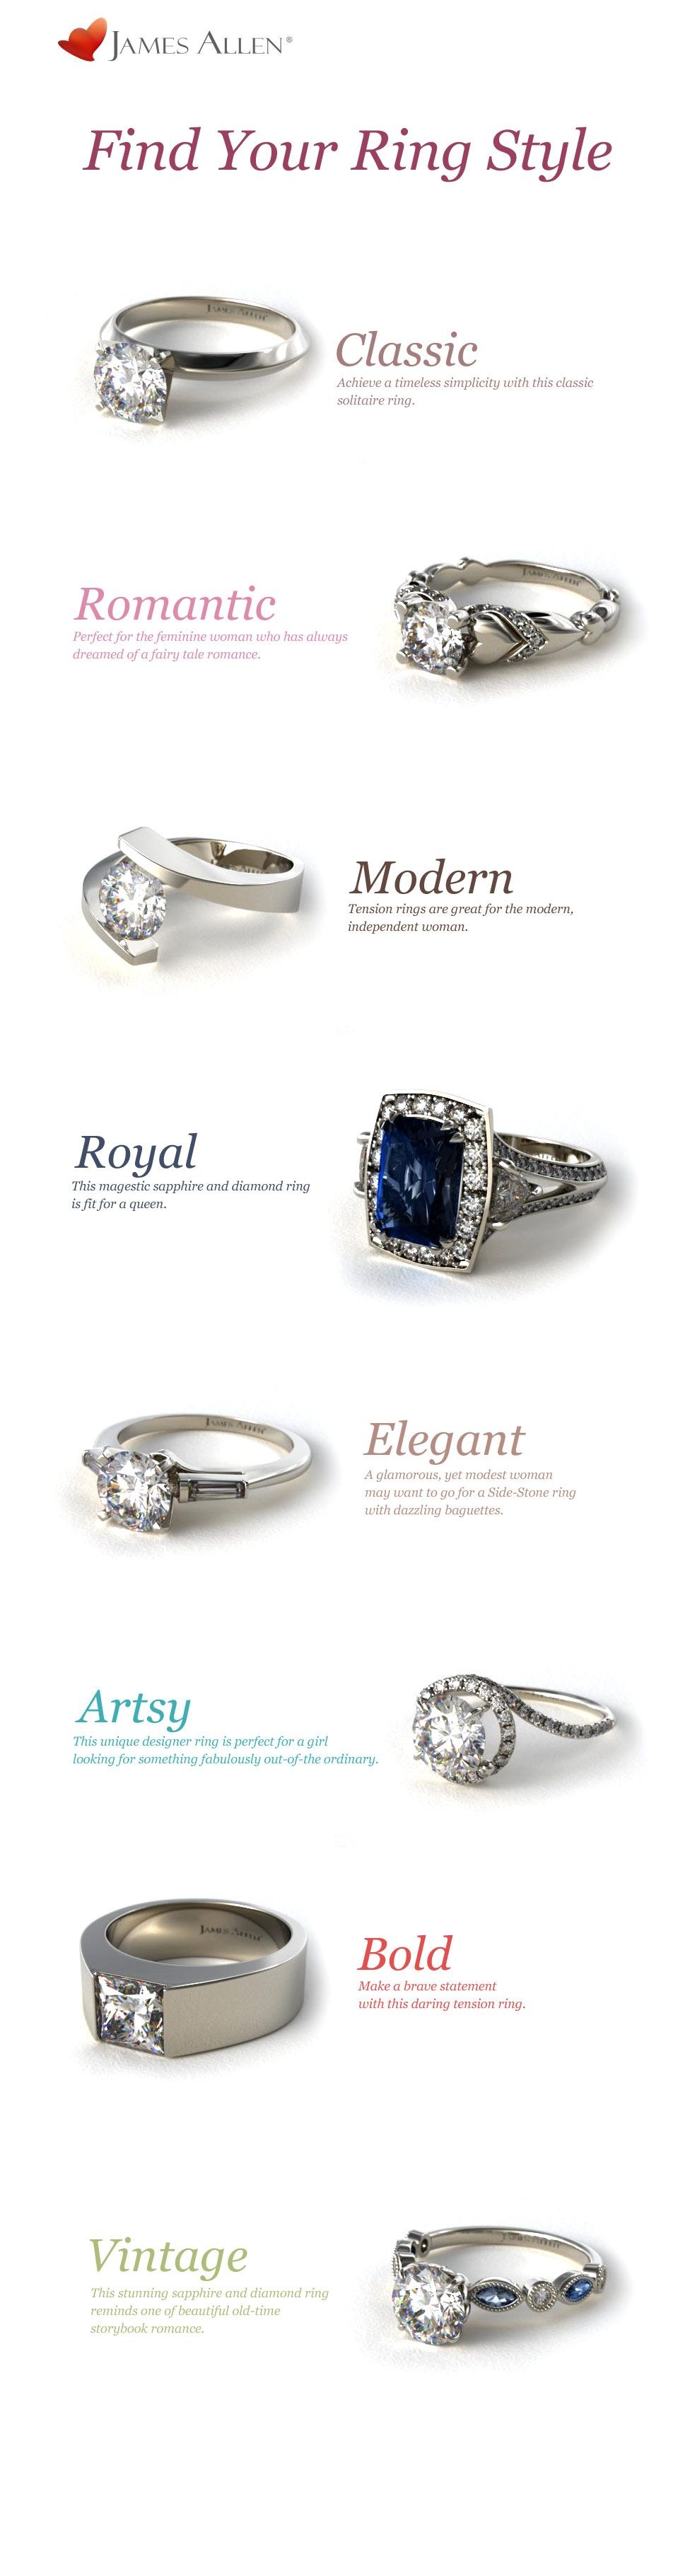 Find Your Ring Style Is Your Dream Engagement Ring Classic Romantic Modern Royal Elegant A Fashion Rings Dream Engagement Rings Classic Engagement Rings